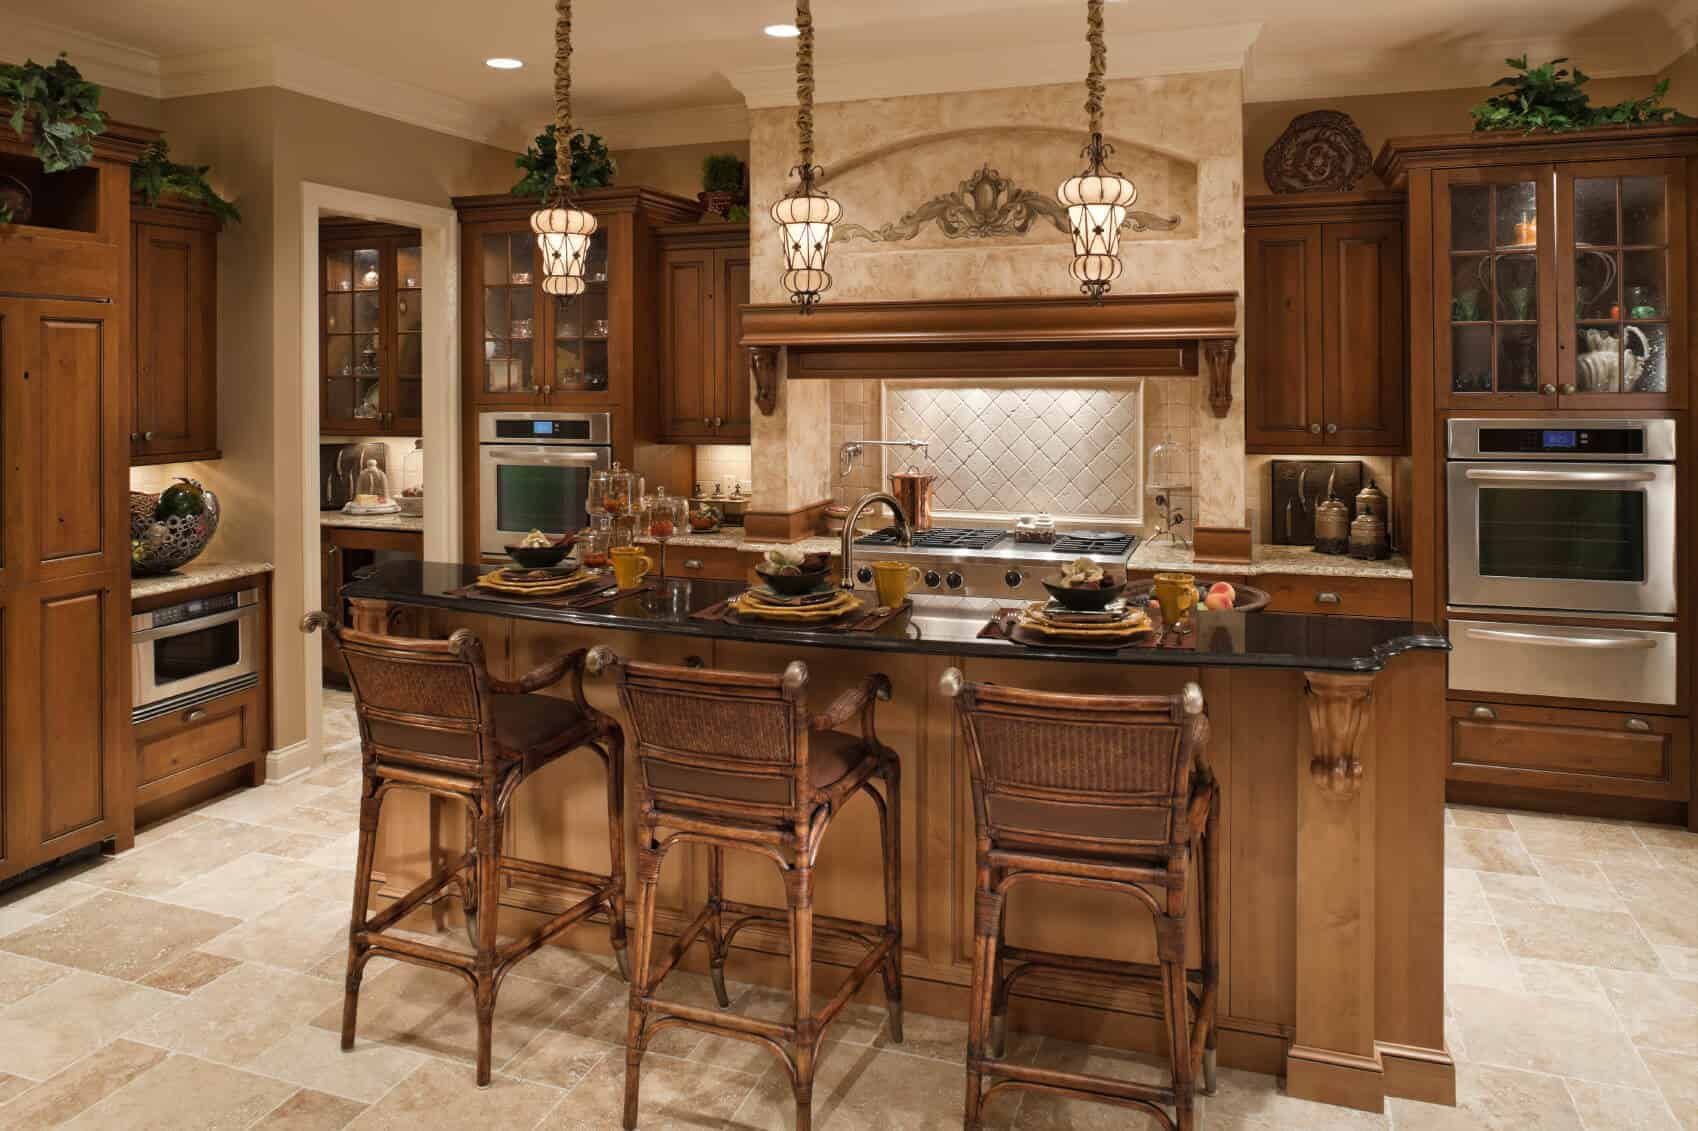 A brown kitchen featuring wooden cabinetry, kitchen counters and a center island with a breakfast bar counter lighted by pendant lights.